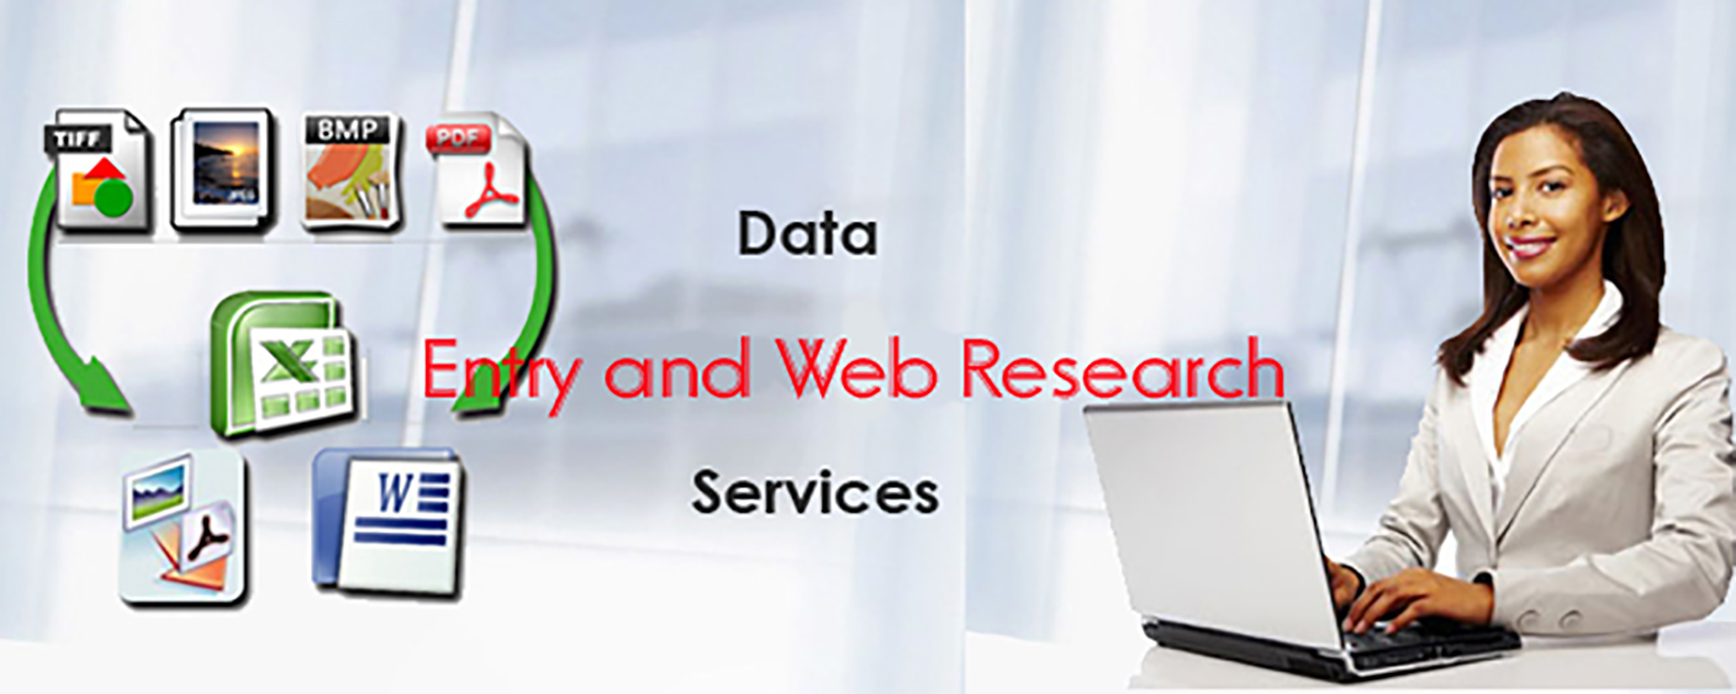 Do any kind of Data Entry and Web Research for you within 24 hours